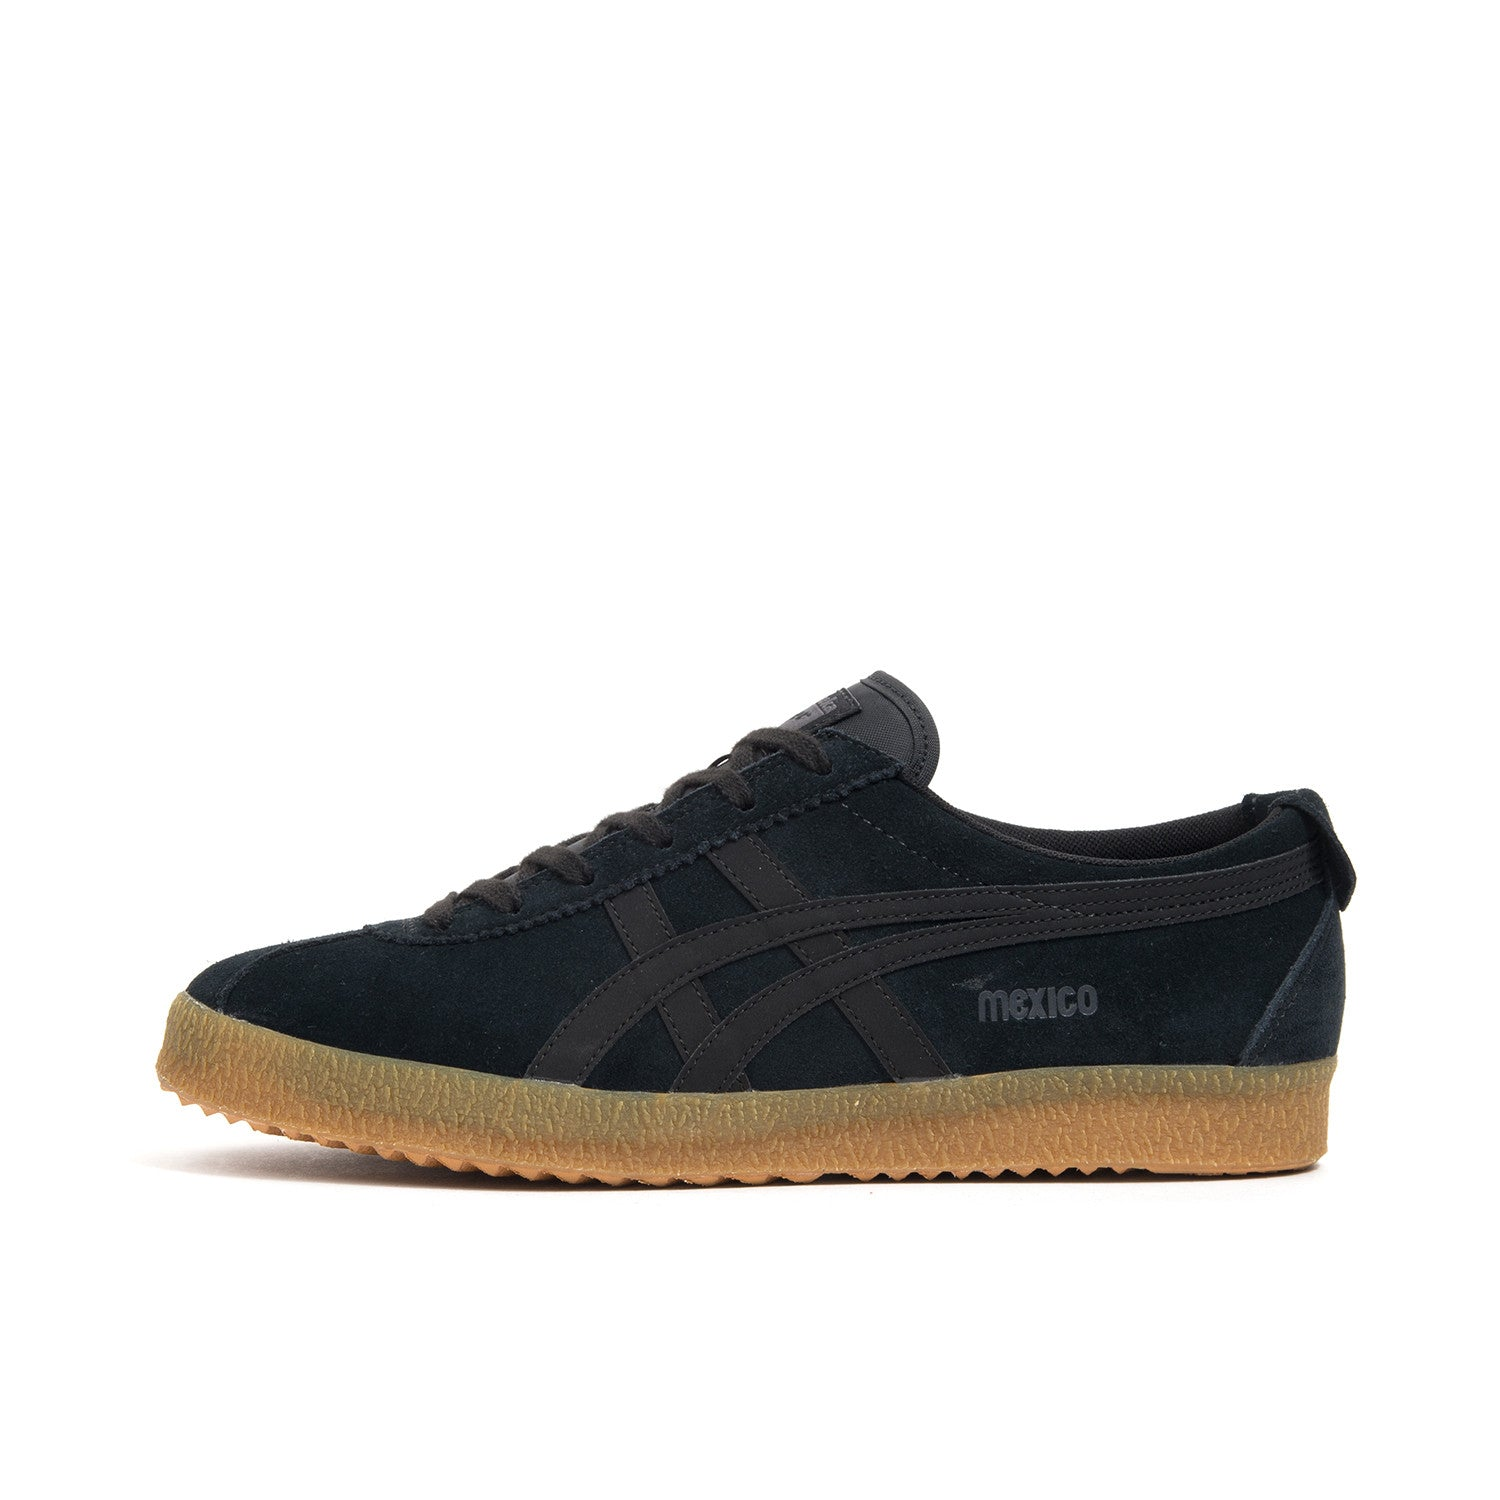 promo code 2d9a8 17d57 Onitsuka Tiger Mexico Delegation Black/Dark Grey